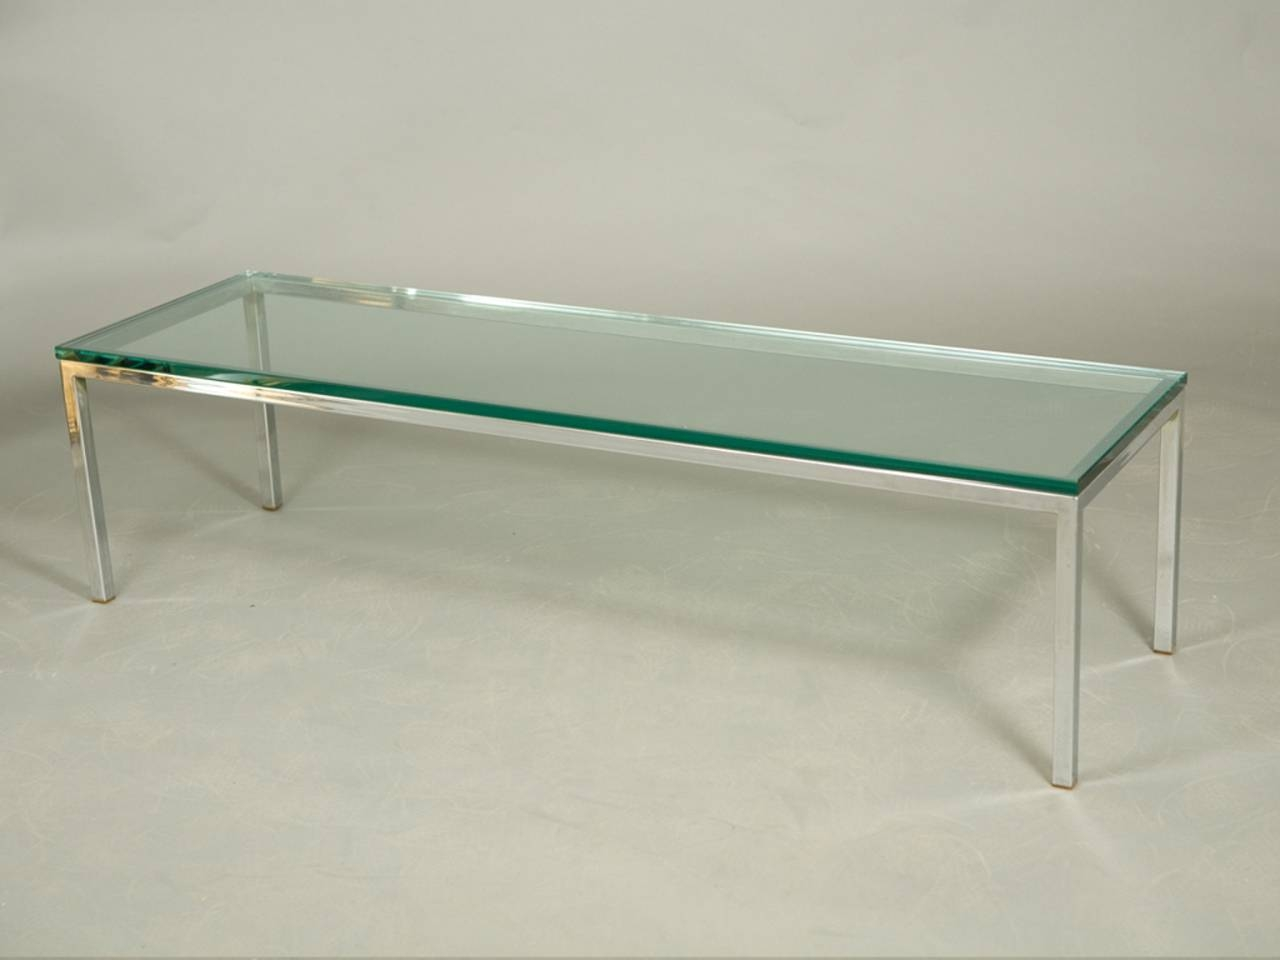 Modern Glass Coffee Tables For Your Modern Kitchen - Chocoaddicts with Contemporary Glass Coffee Tables (Image 26 of 30)